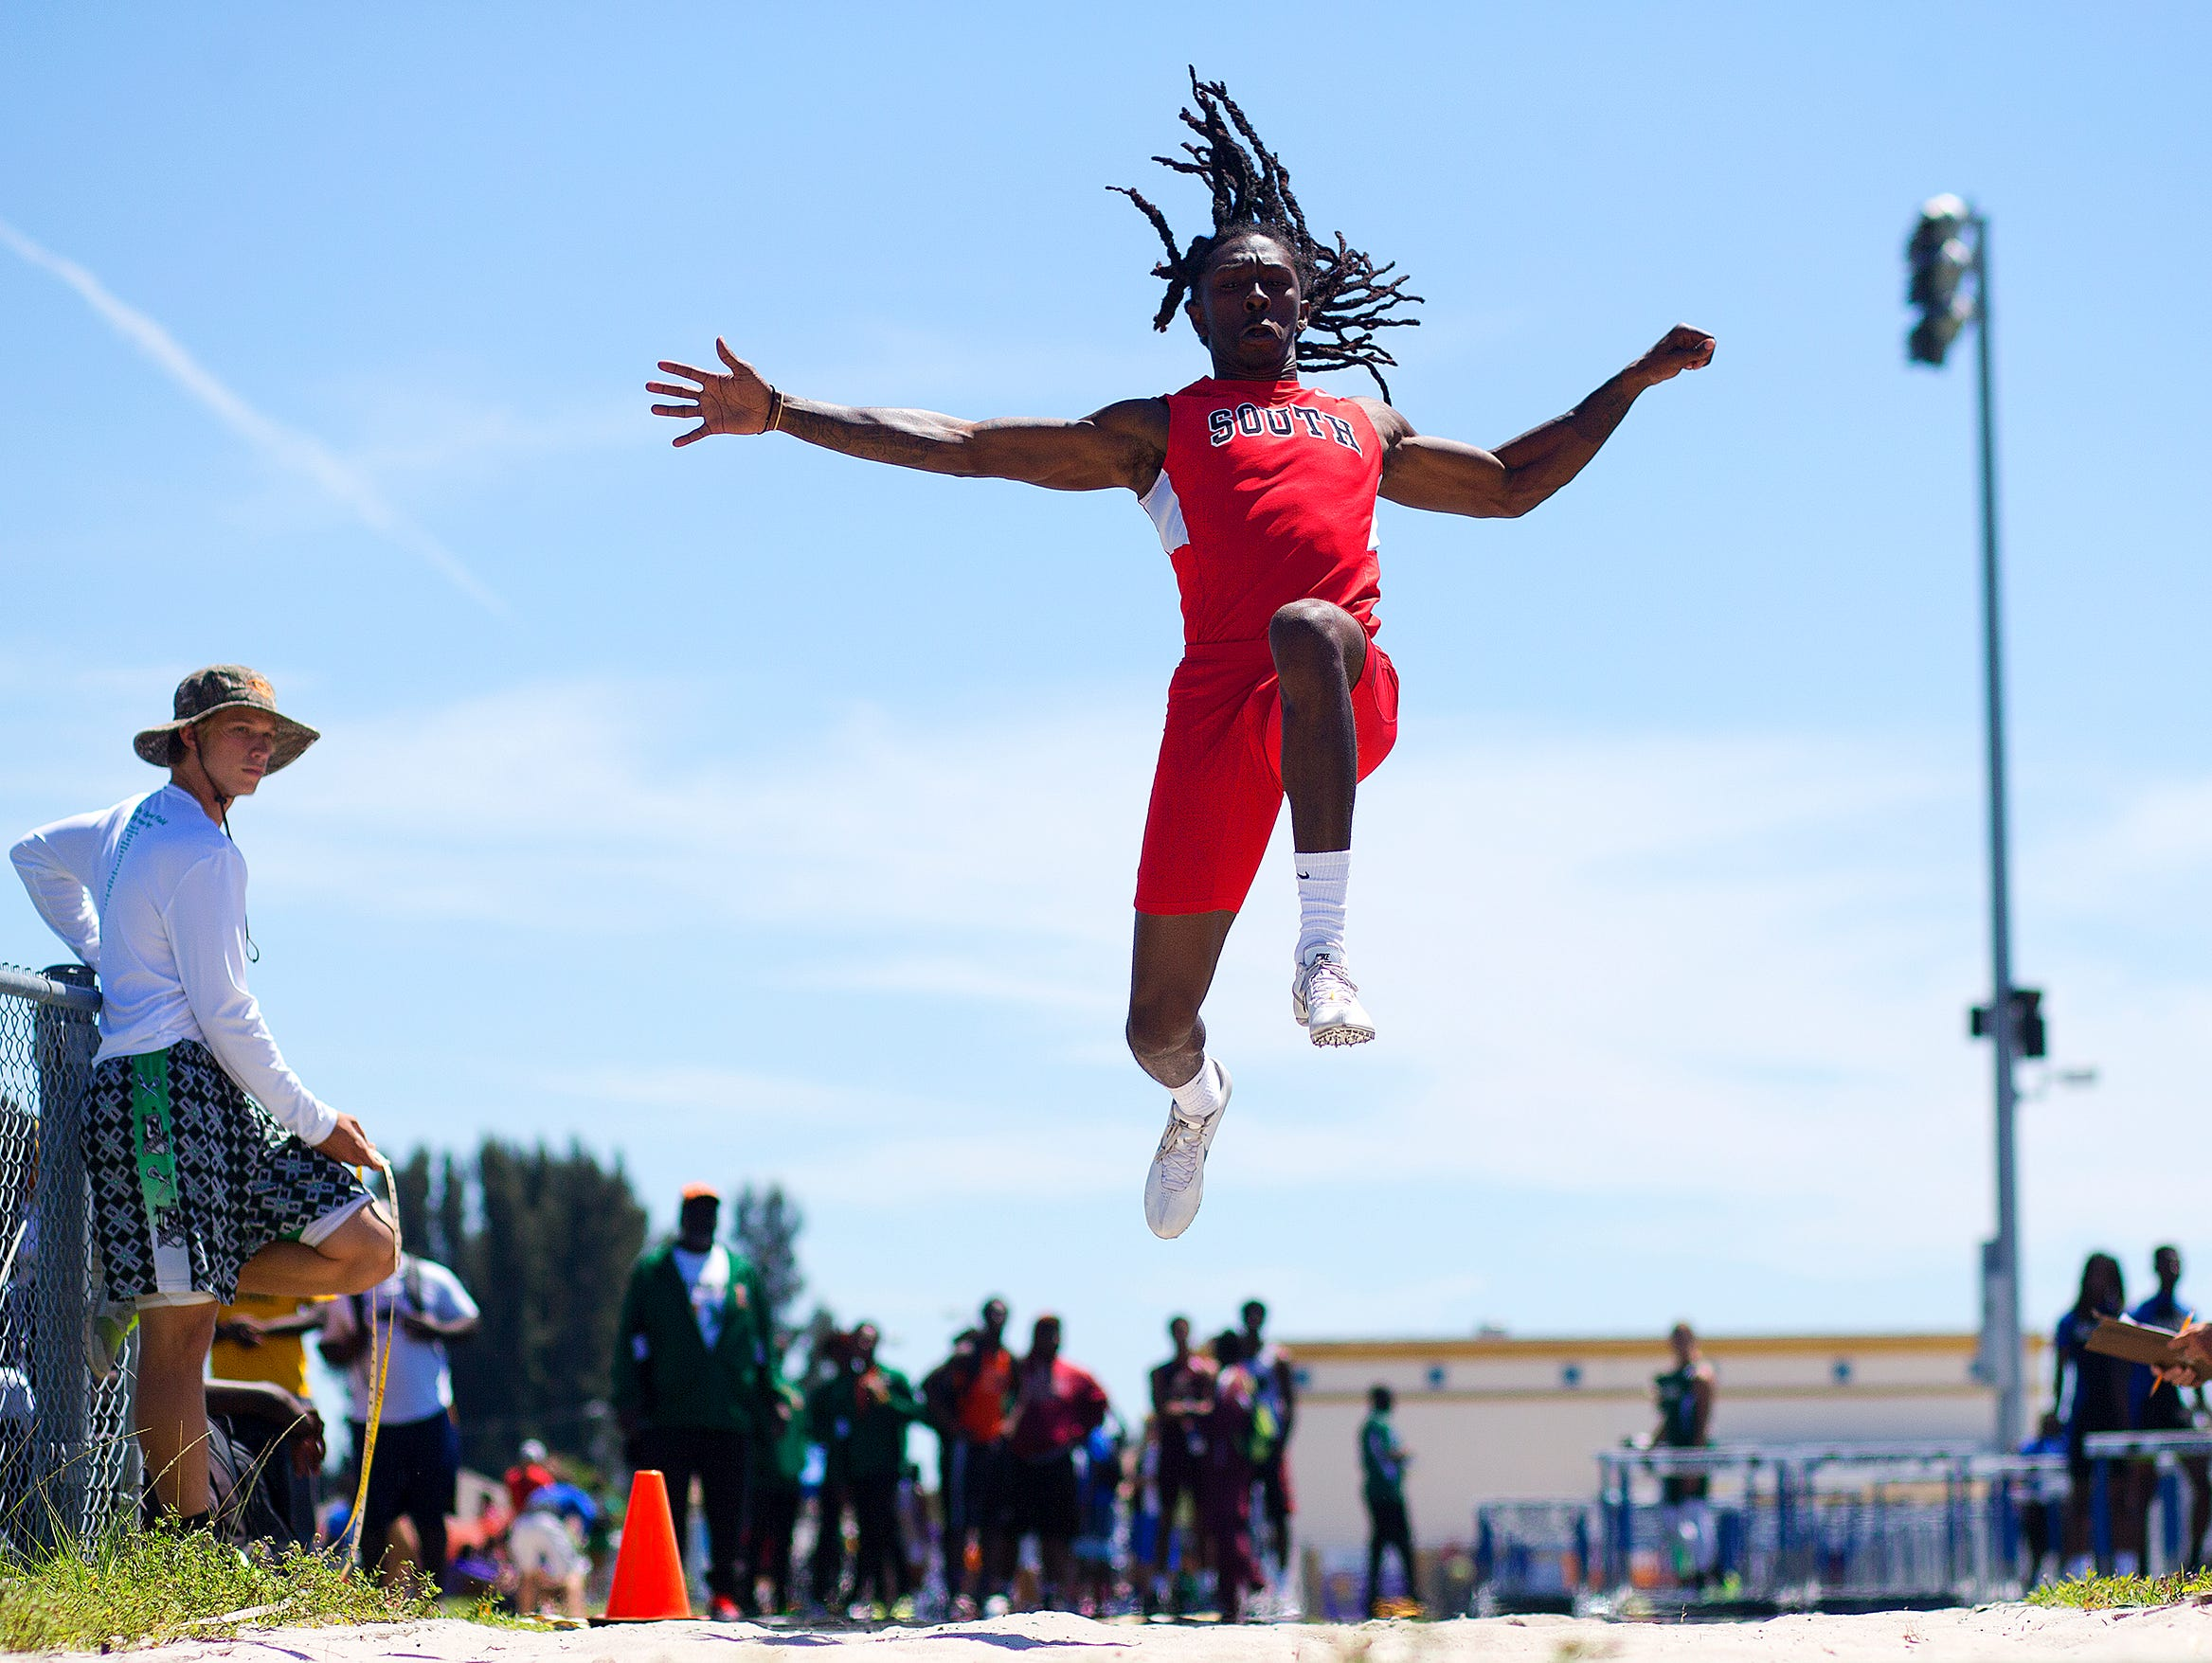 South Fort Myers High School's Willie Johnson competes Saturday in the long jump of the LCAC Track and Field Championships at Ida Baker High School in Cape Coral. Johnson won the event.